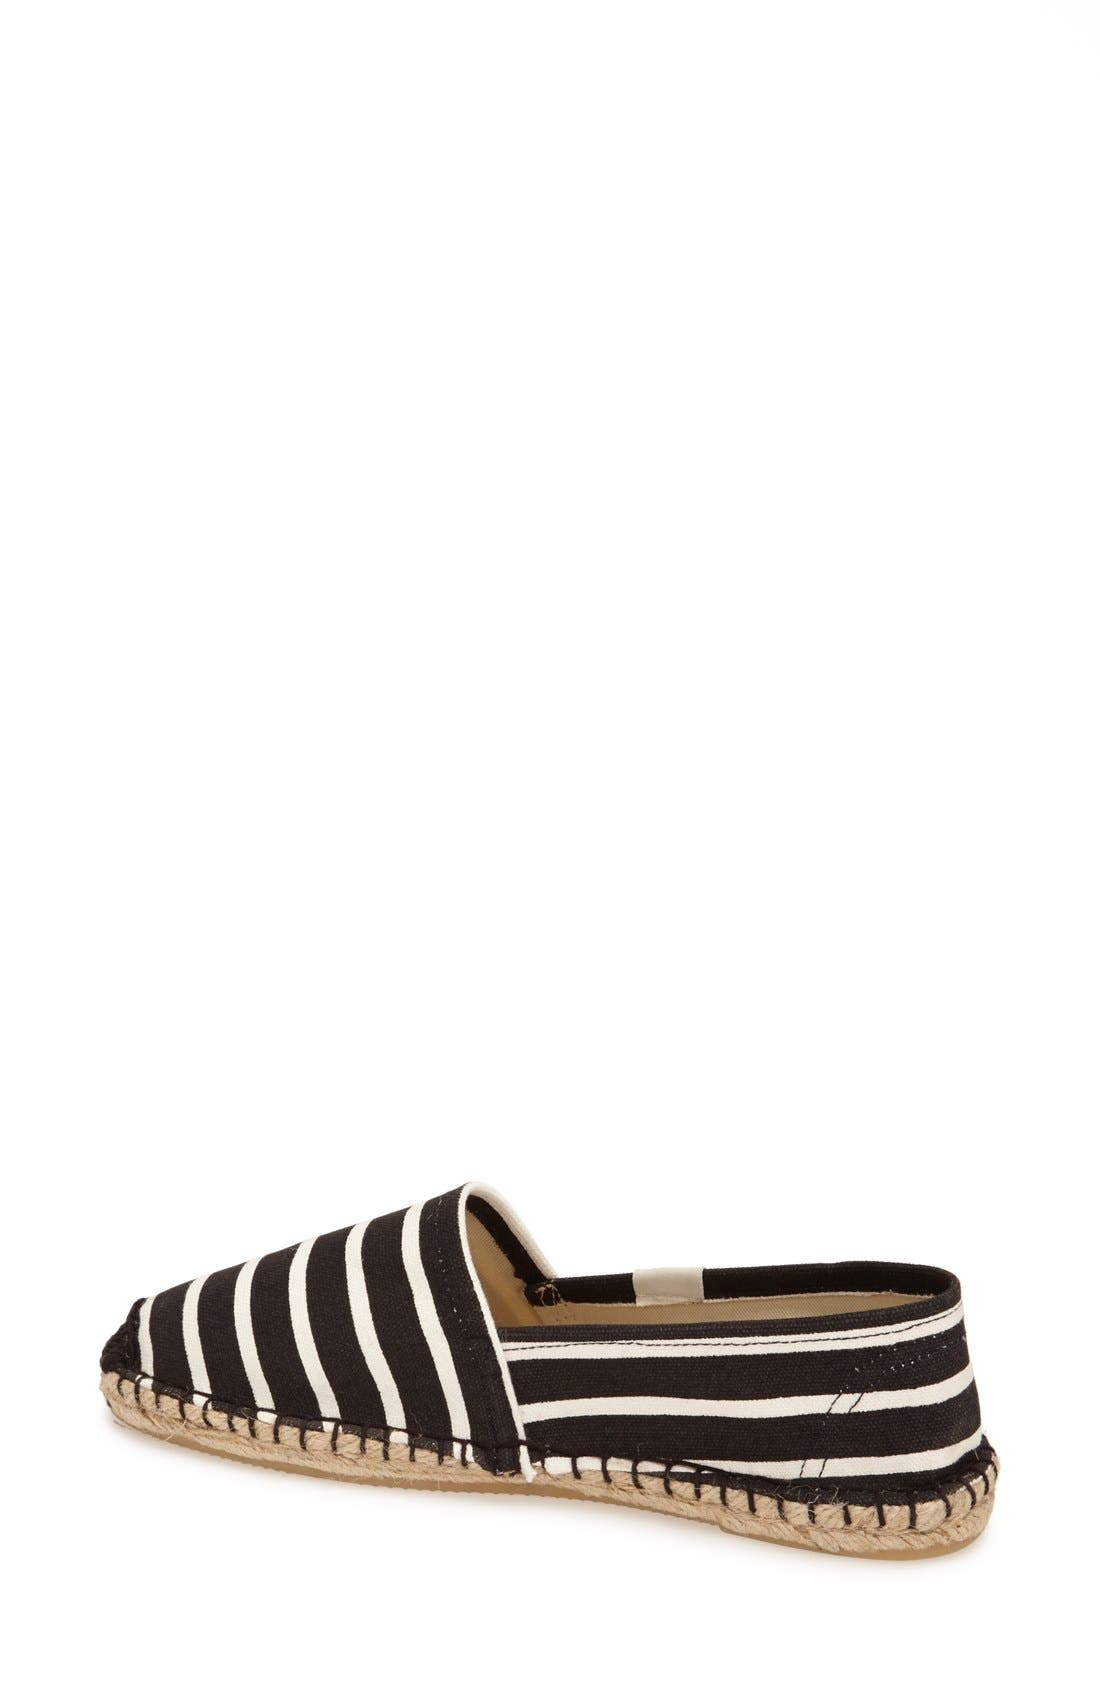 Alternate Image 2  - Soludos 'Classic' Espadrille Slip-On (Women)